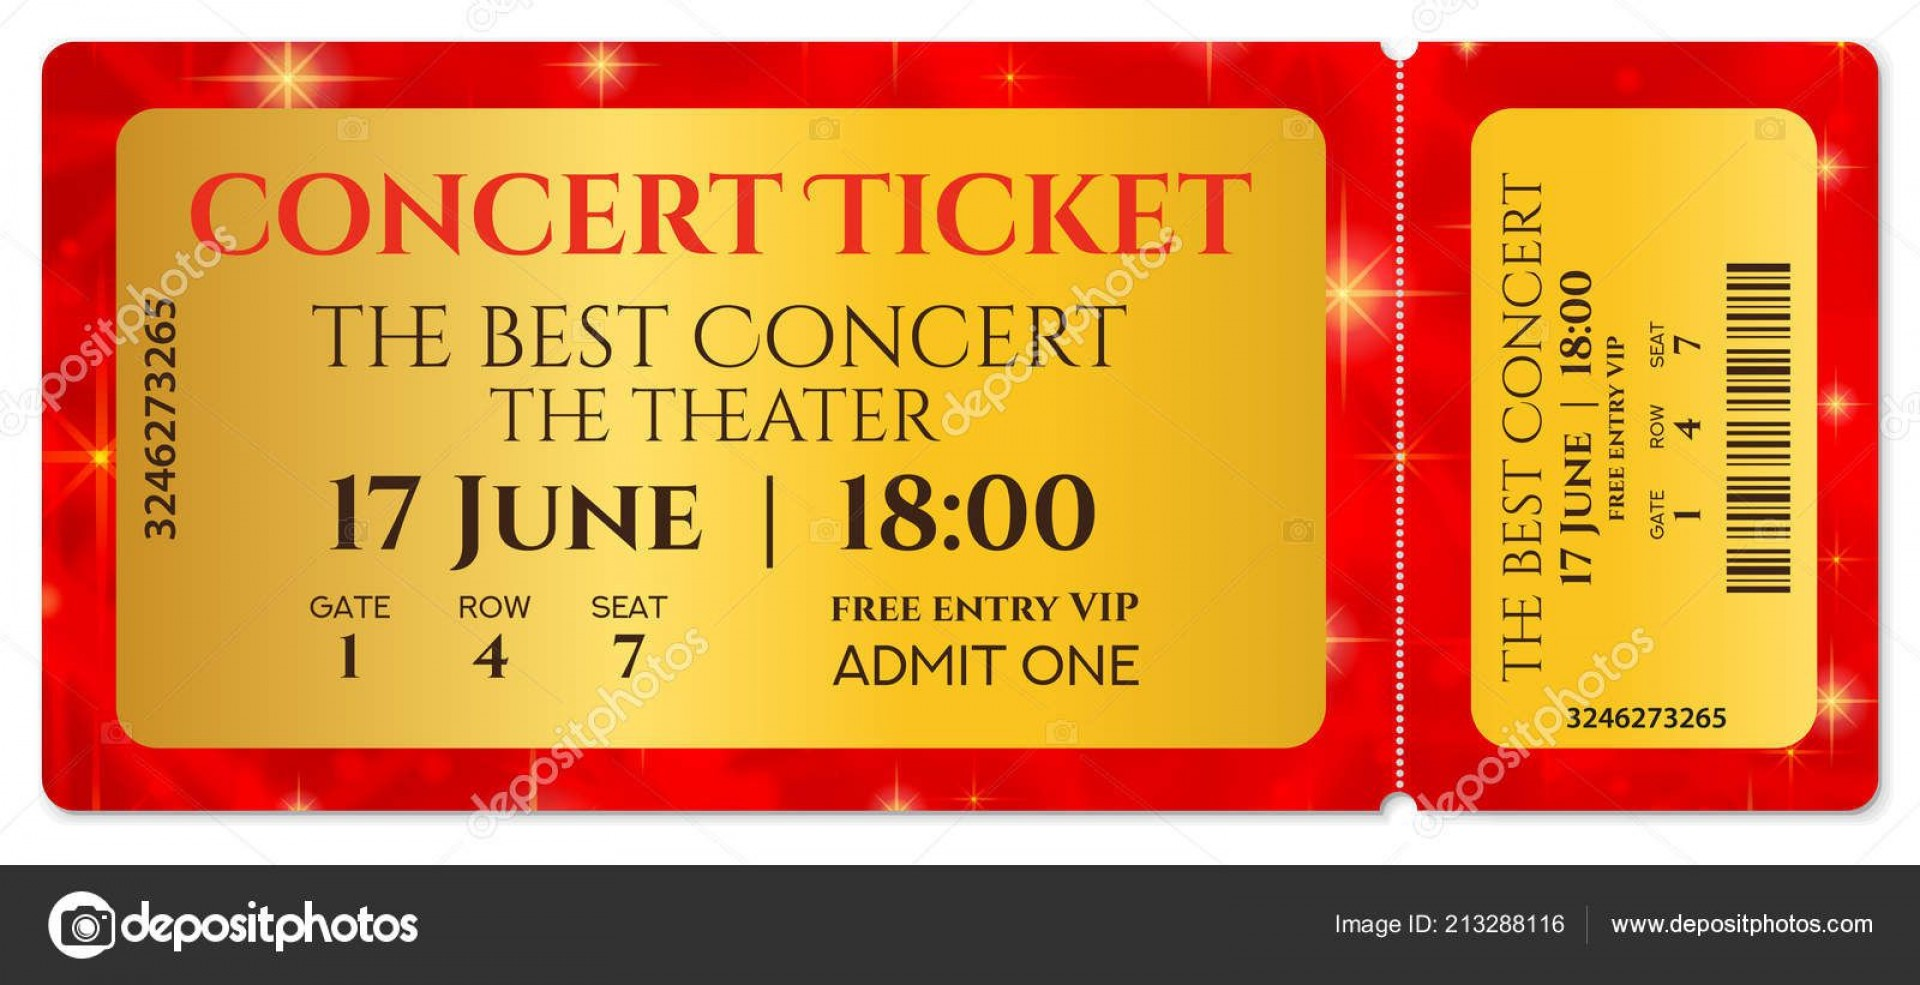 006 Outstanding Concert Ticket Template Free Printable High Def  Gift1920